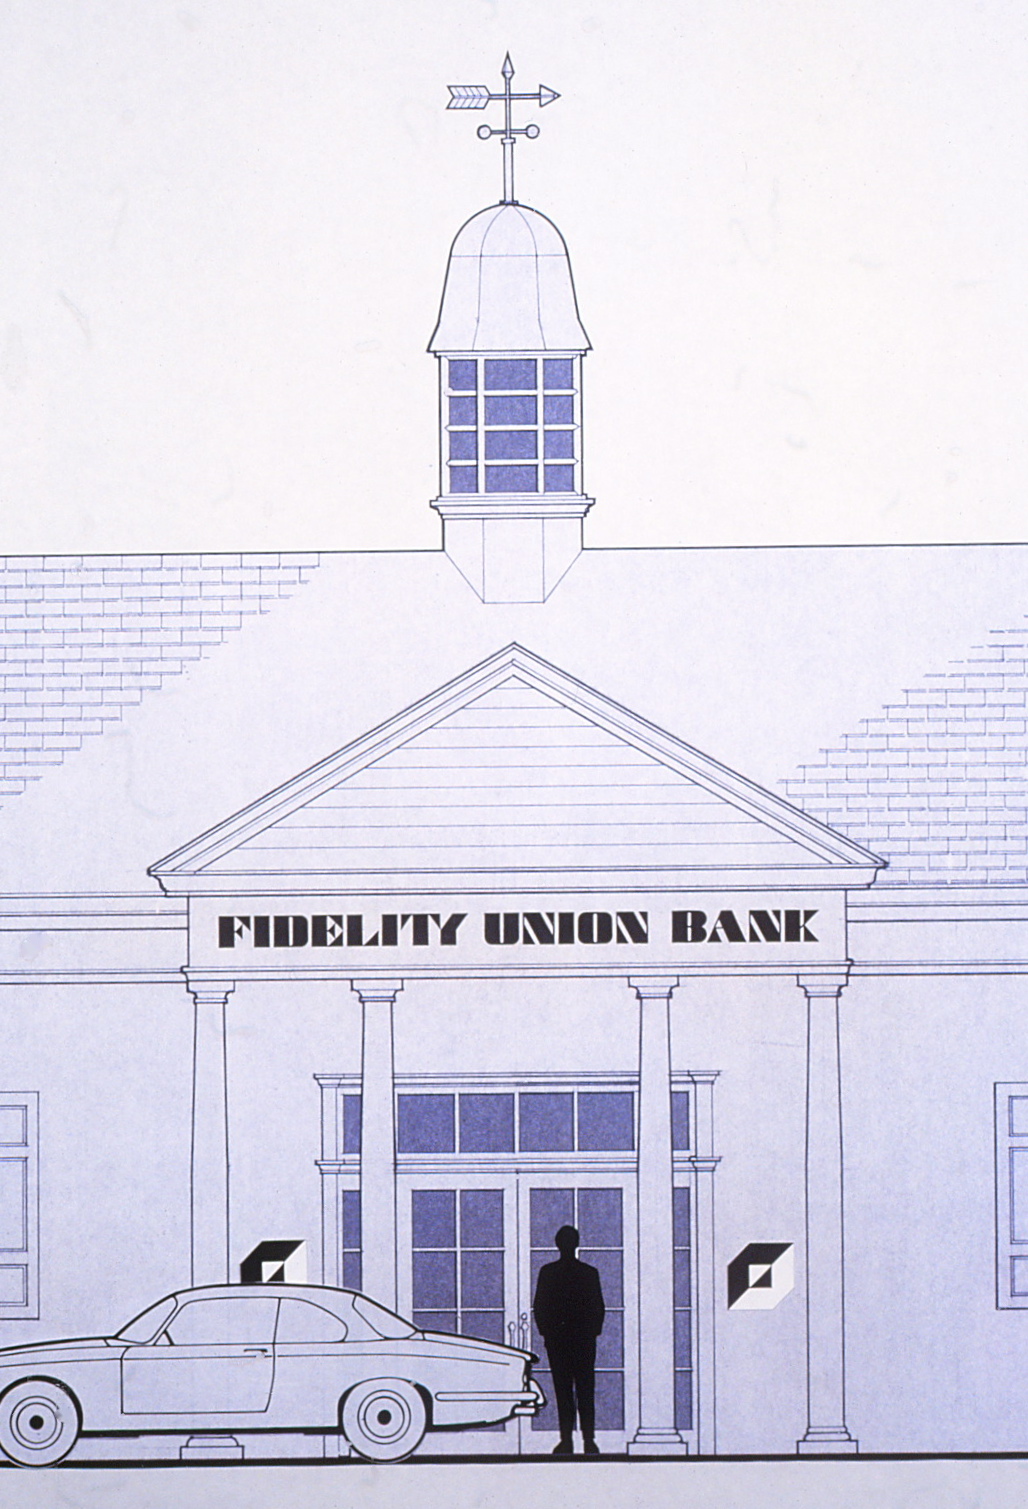 Elevation drawing featuring the logo and typface as it would appear on the frant of a typical bank building,          with a car and a person standing in front of it.